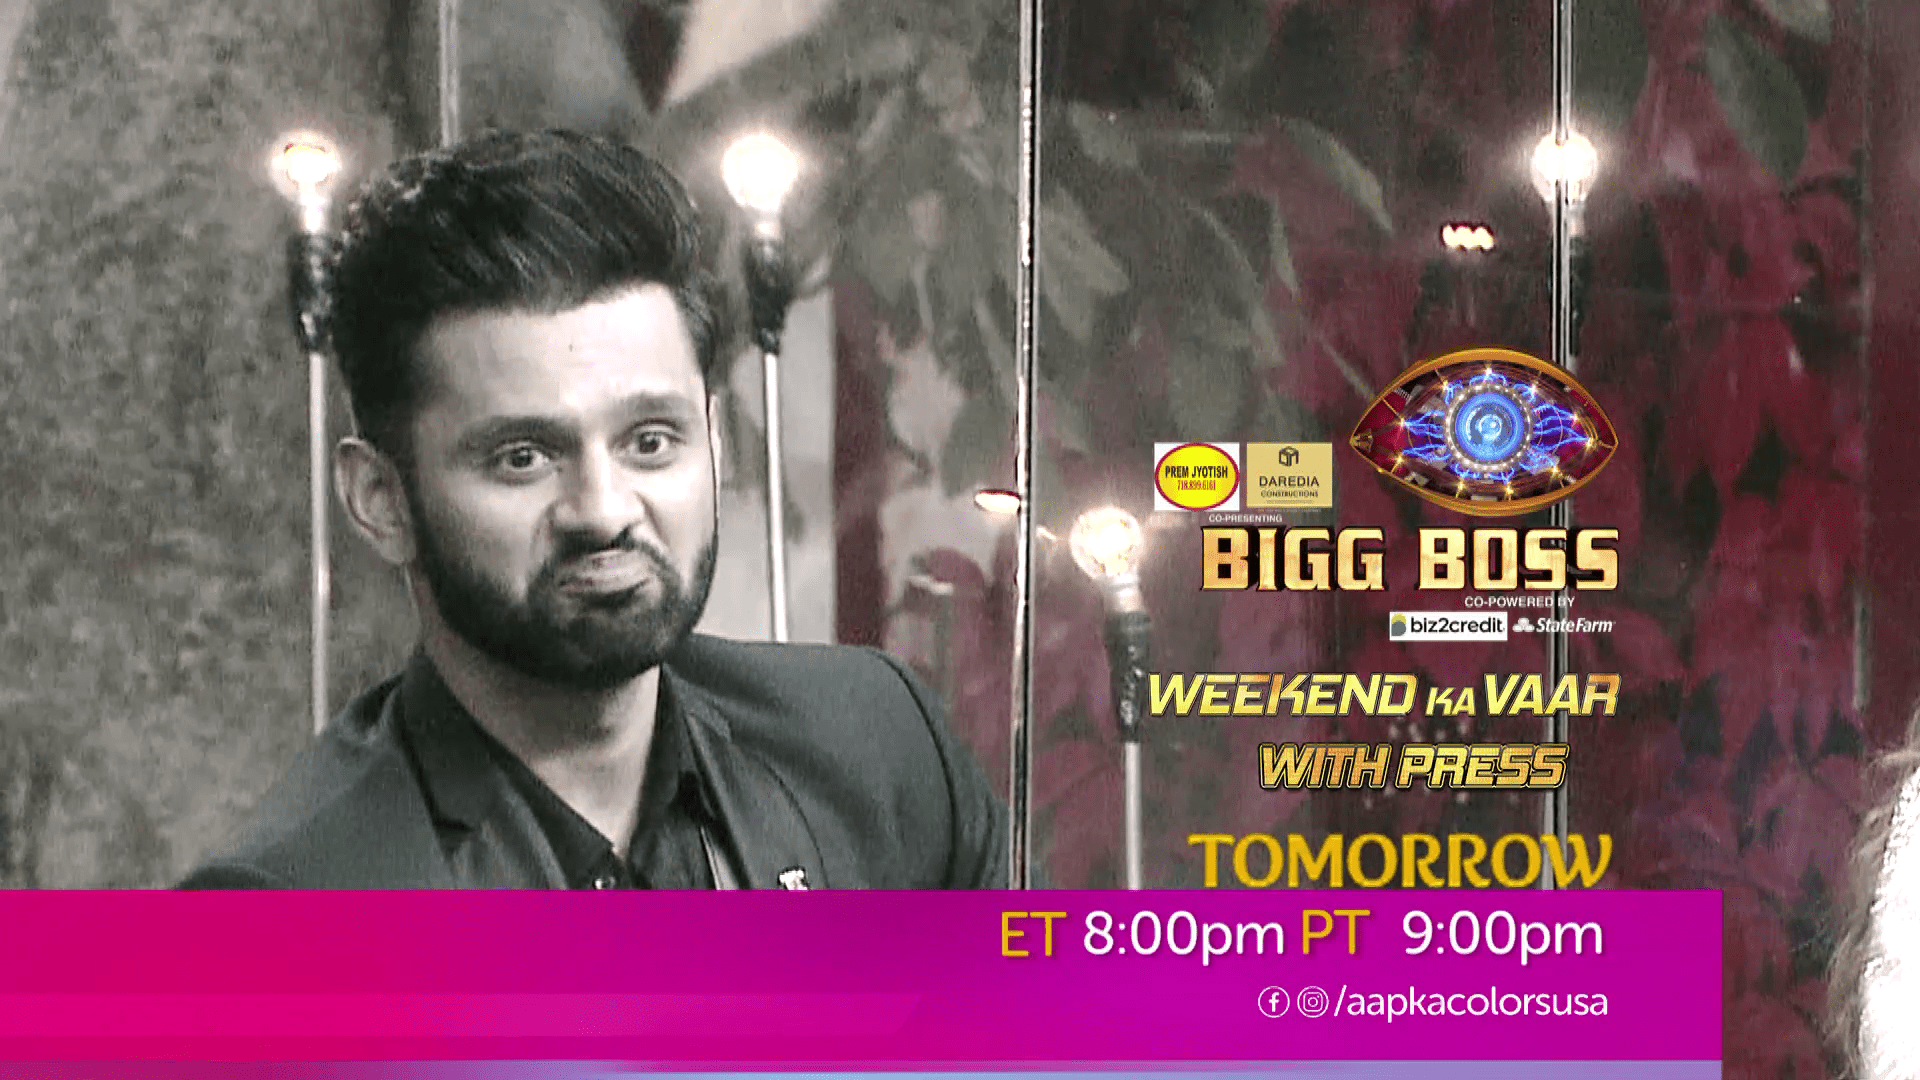 Watch Bigg Boss Tomorrow at ET 8:00pm PT 9:00pm on Aapka Colors